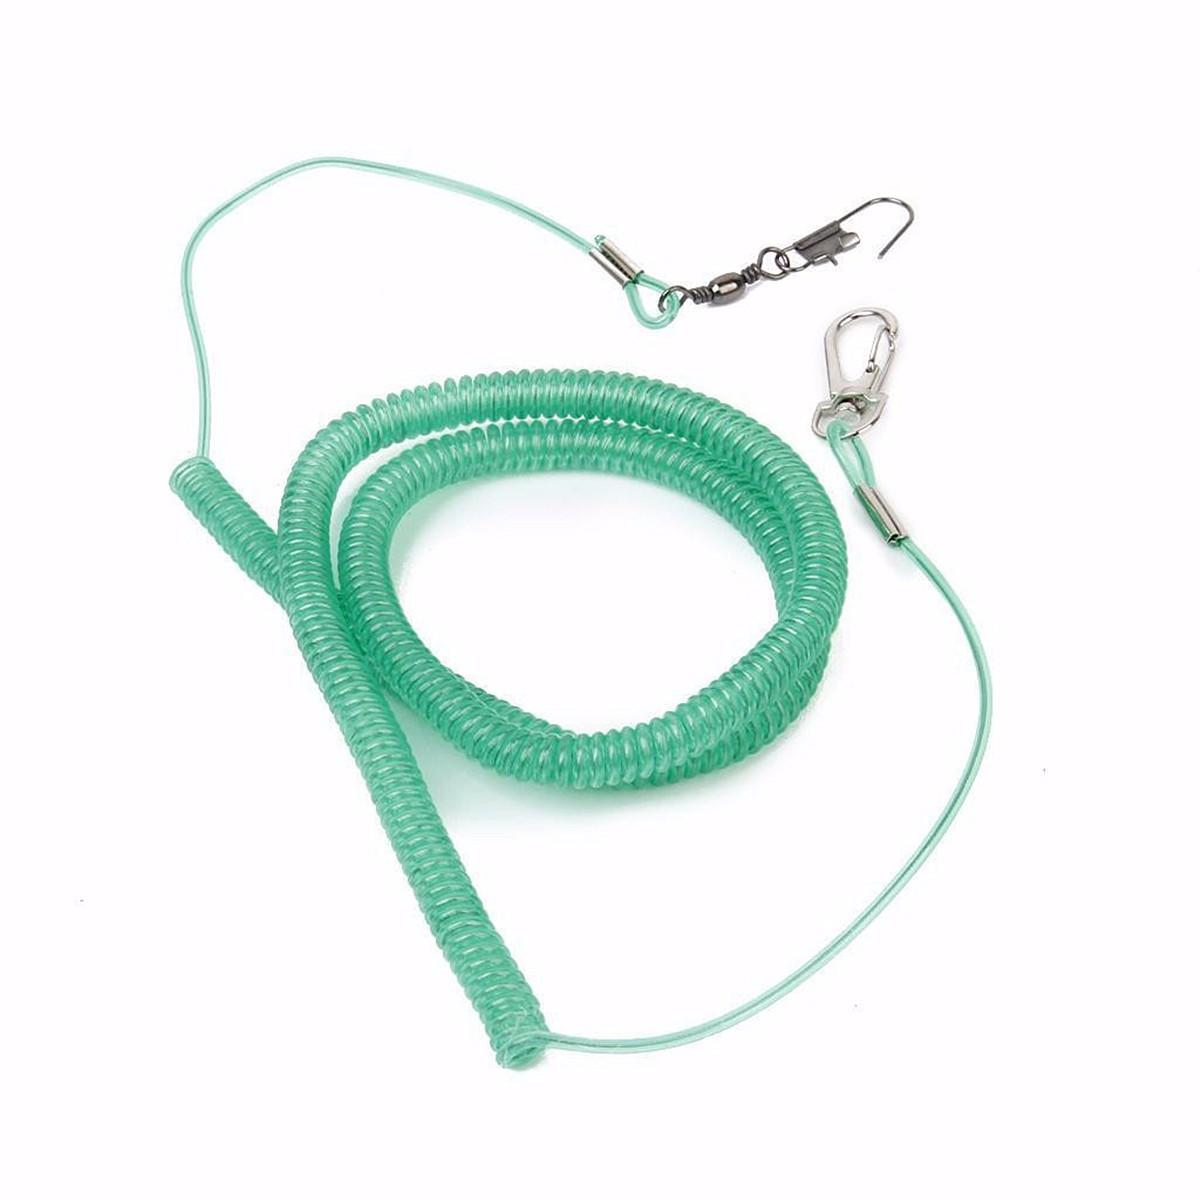 Anti bite Parrot Flying Training Rope Bird Lead Leash Kits Outdoor Flying Rope Jumping for Cockatiel - 8